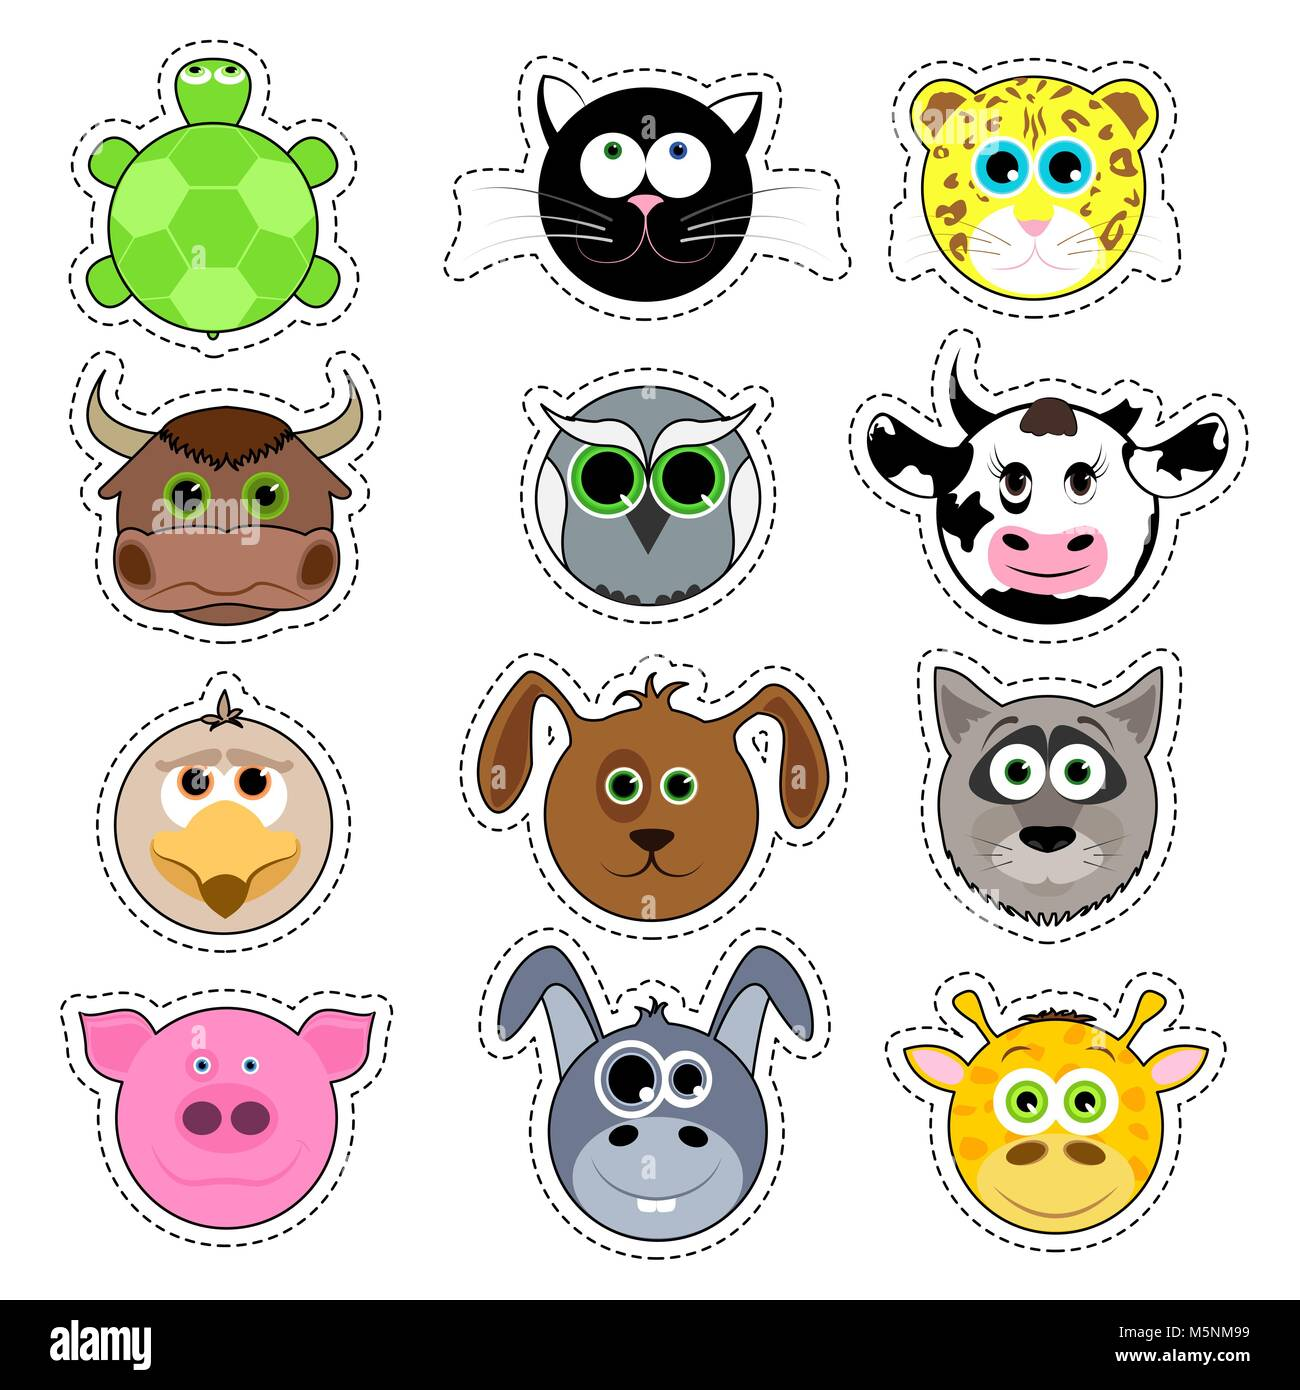 Set of cute cartoon animals. Cute animal face sticker collection. - Stock Image